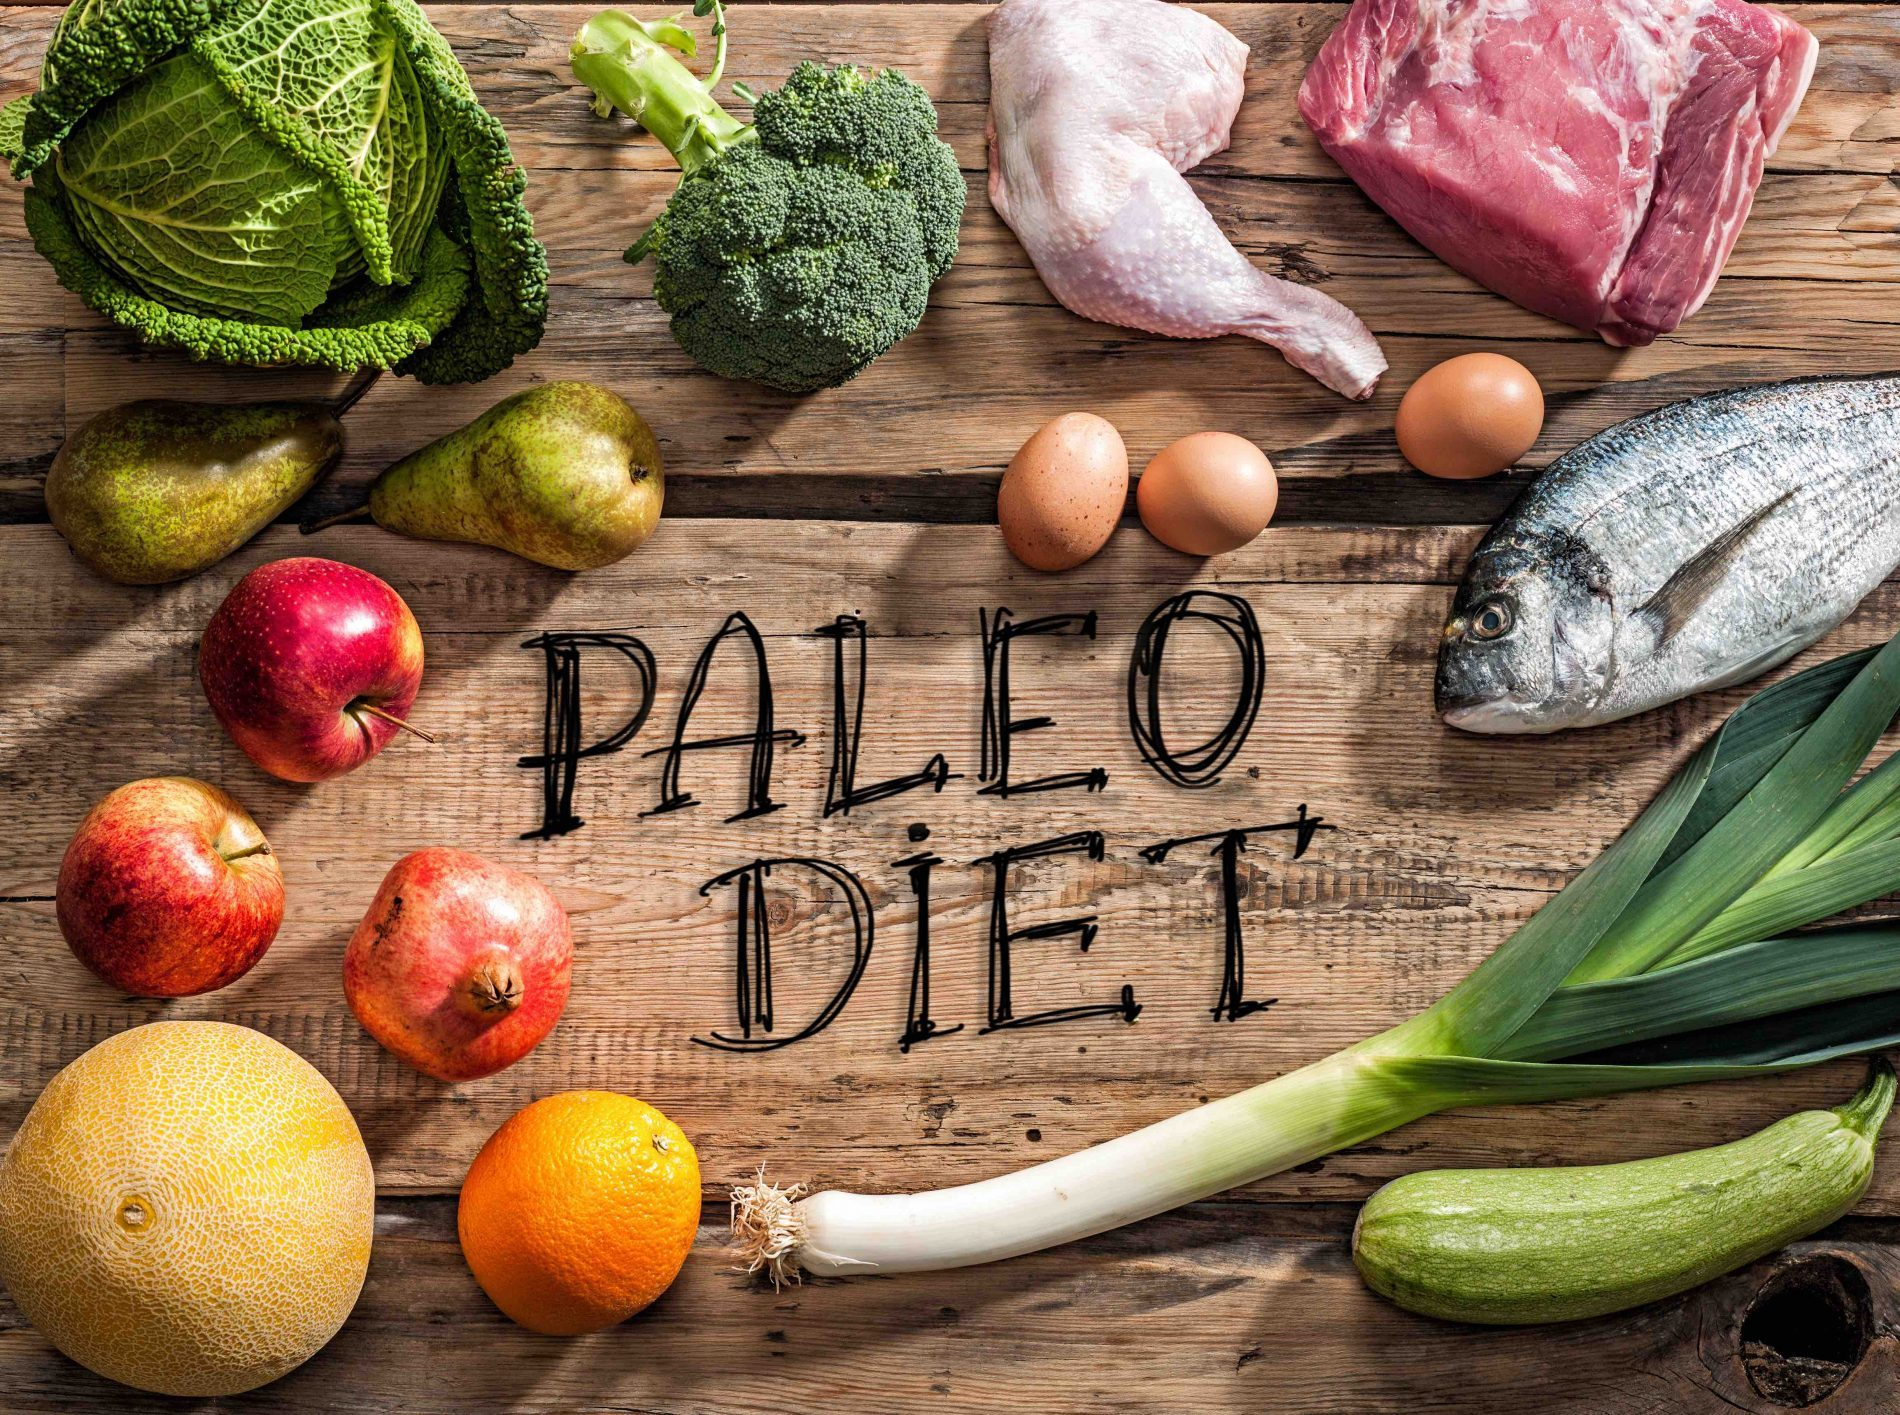 5 Hacks to Upgrade Your Paleo DIet